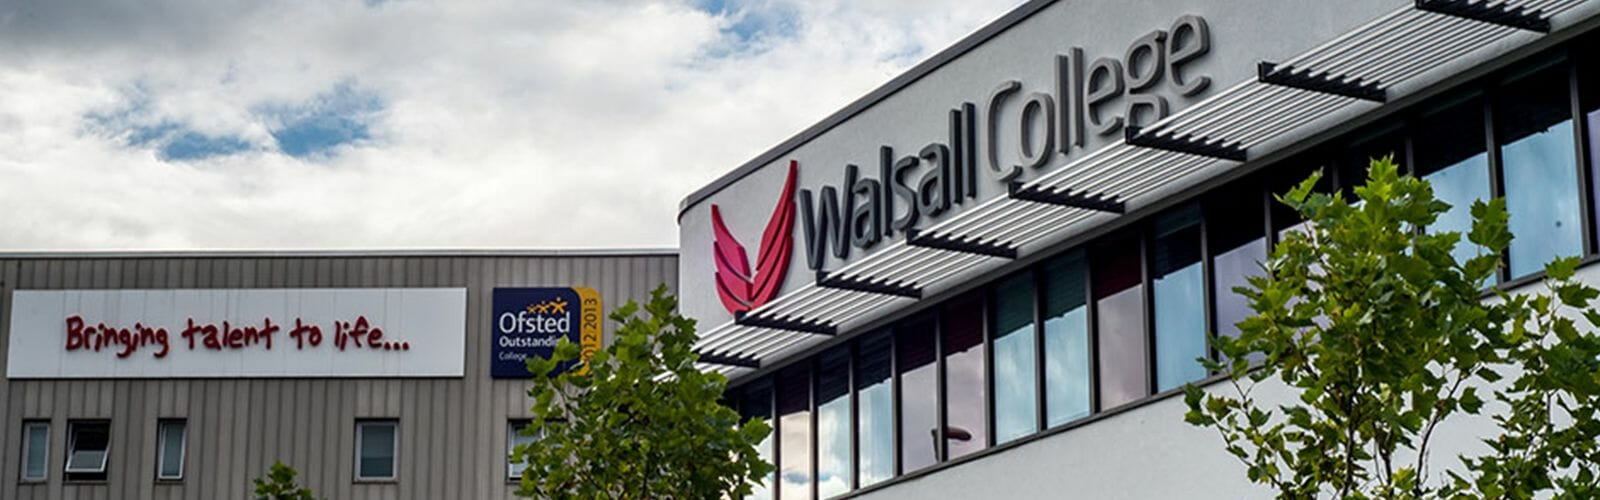 Walsall Adult And Community College Merges With Walsall